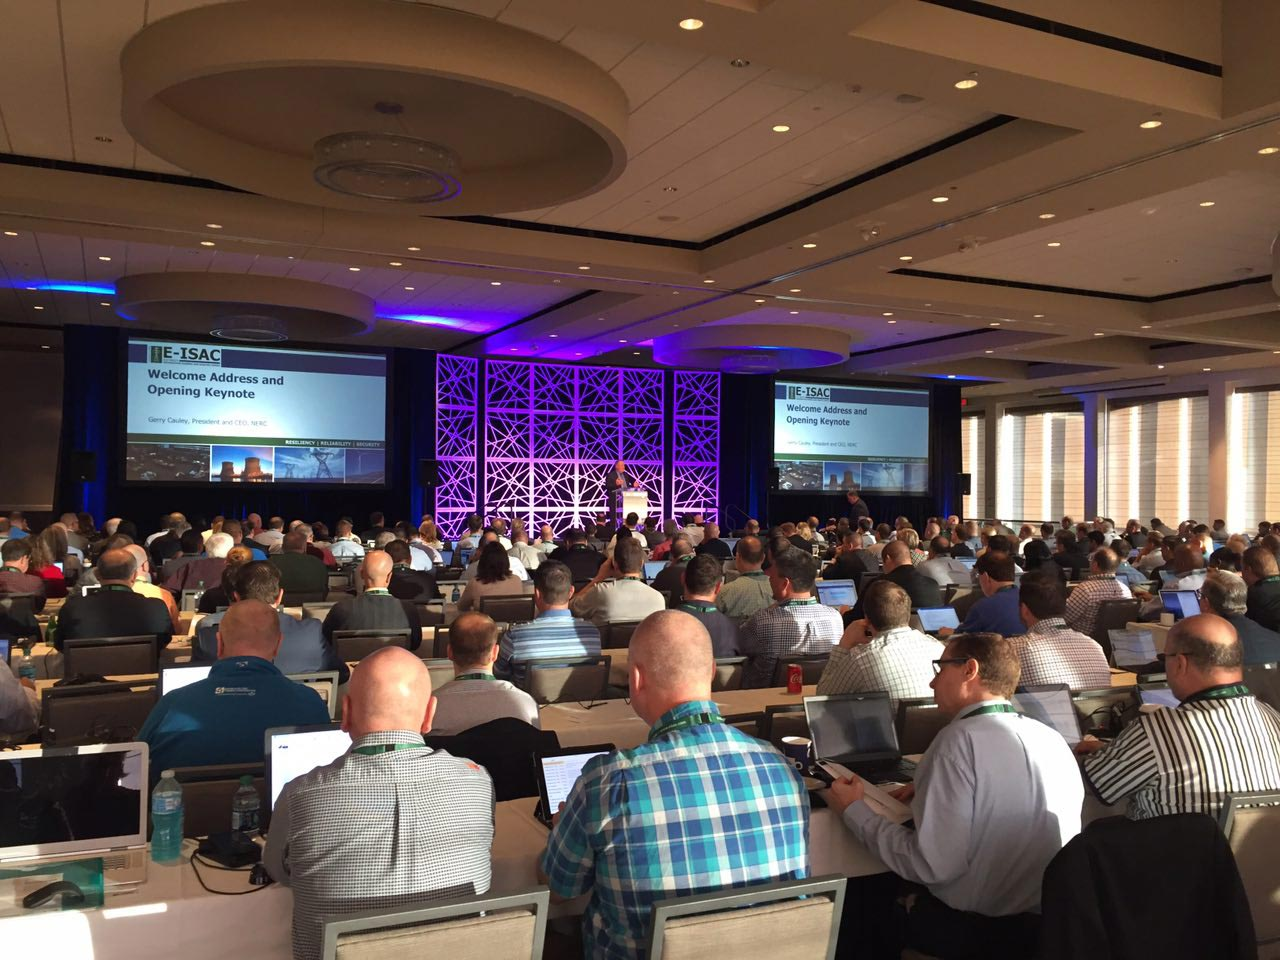 Hundreds-of-utility-and-cybersecurity-professionals-gathered-to-hear-from-NERC-s-CEO-Gerry-W-Cauley-at-GridSecCon